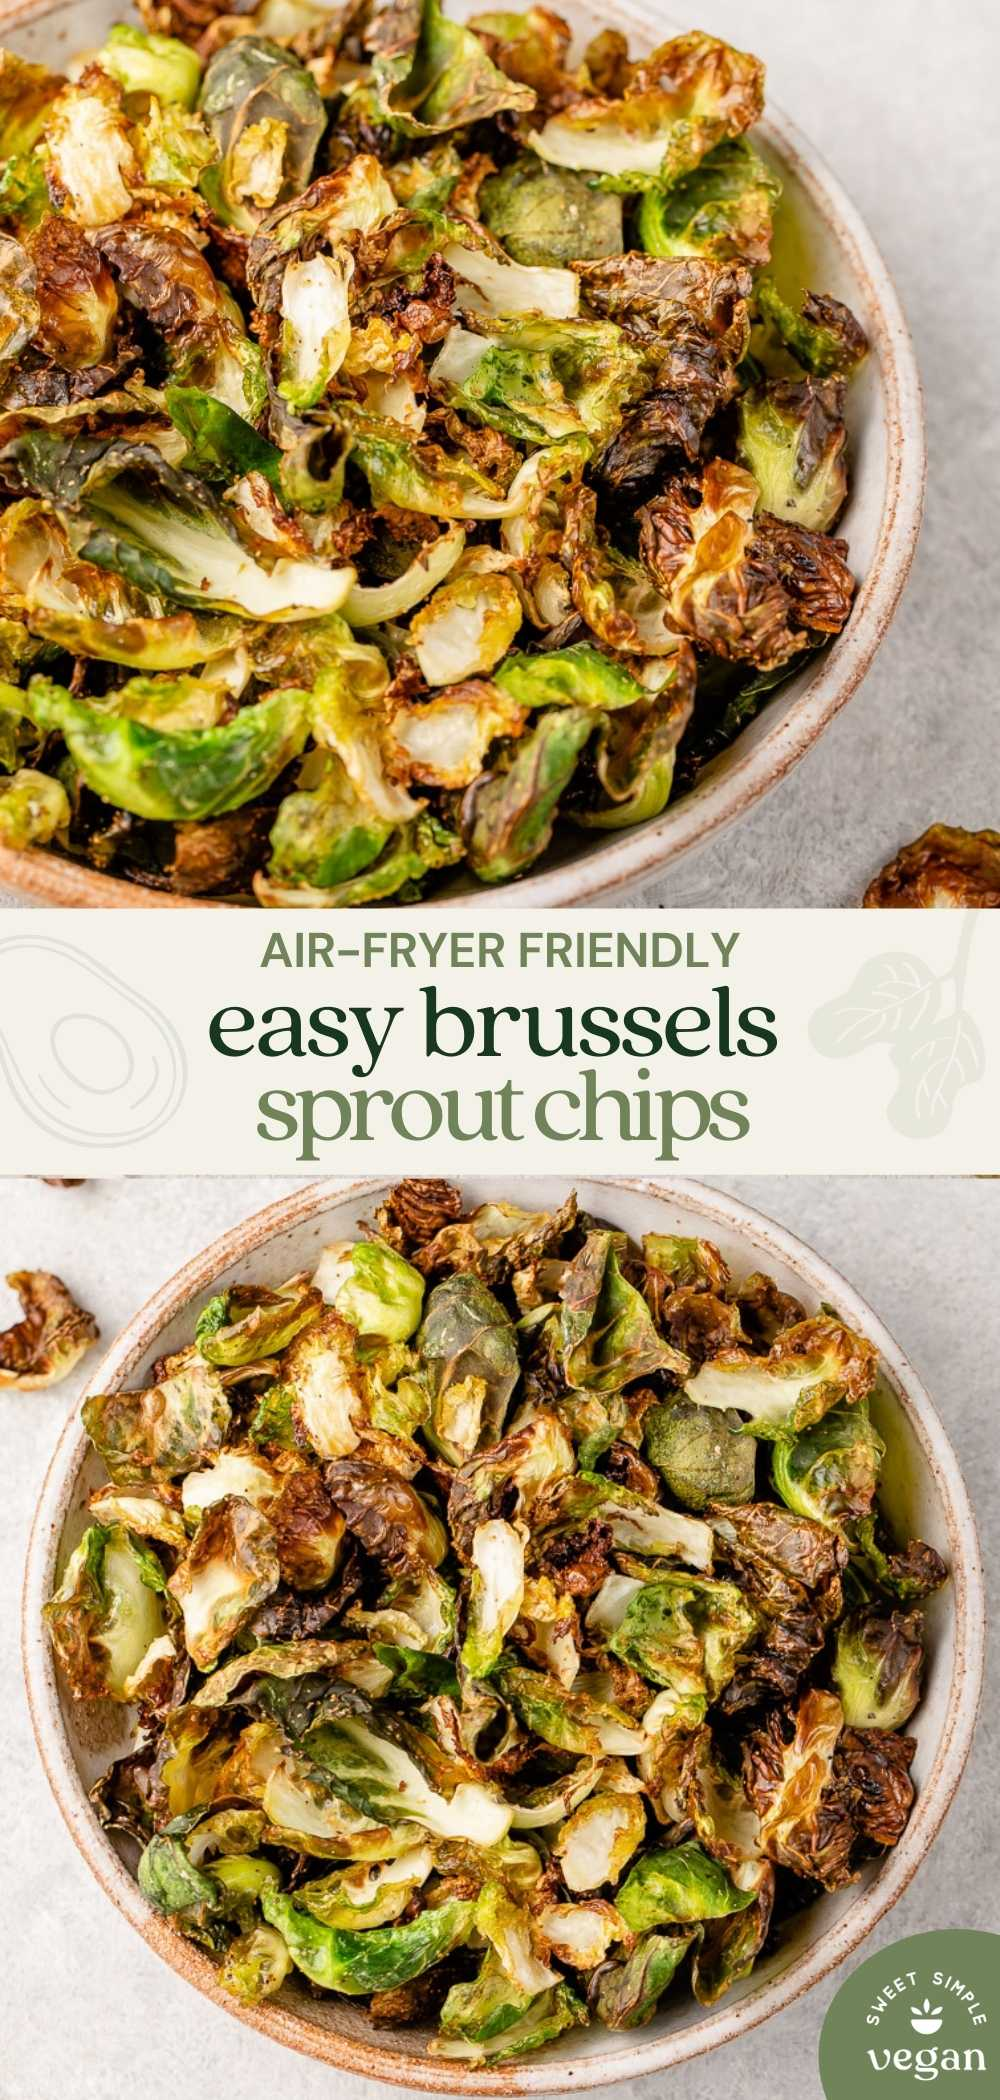 image for pinterest with bowl of brussels sprout chips and text